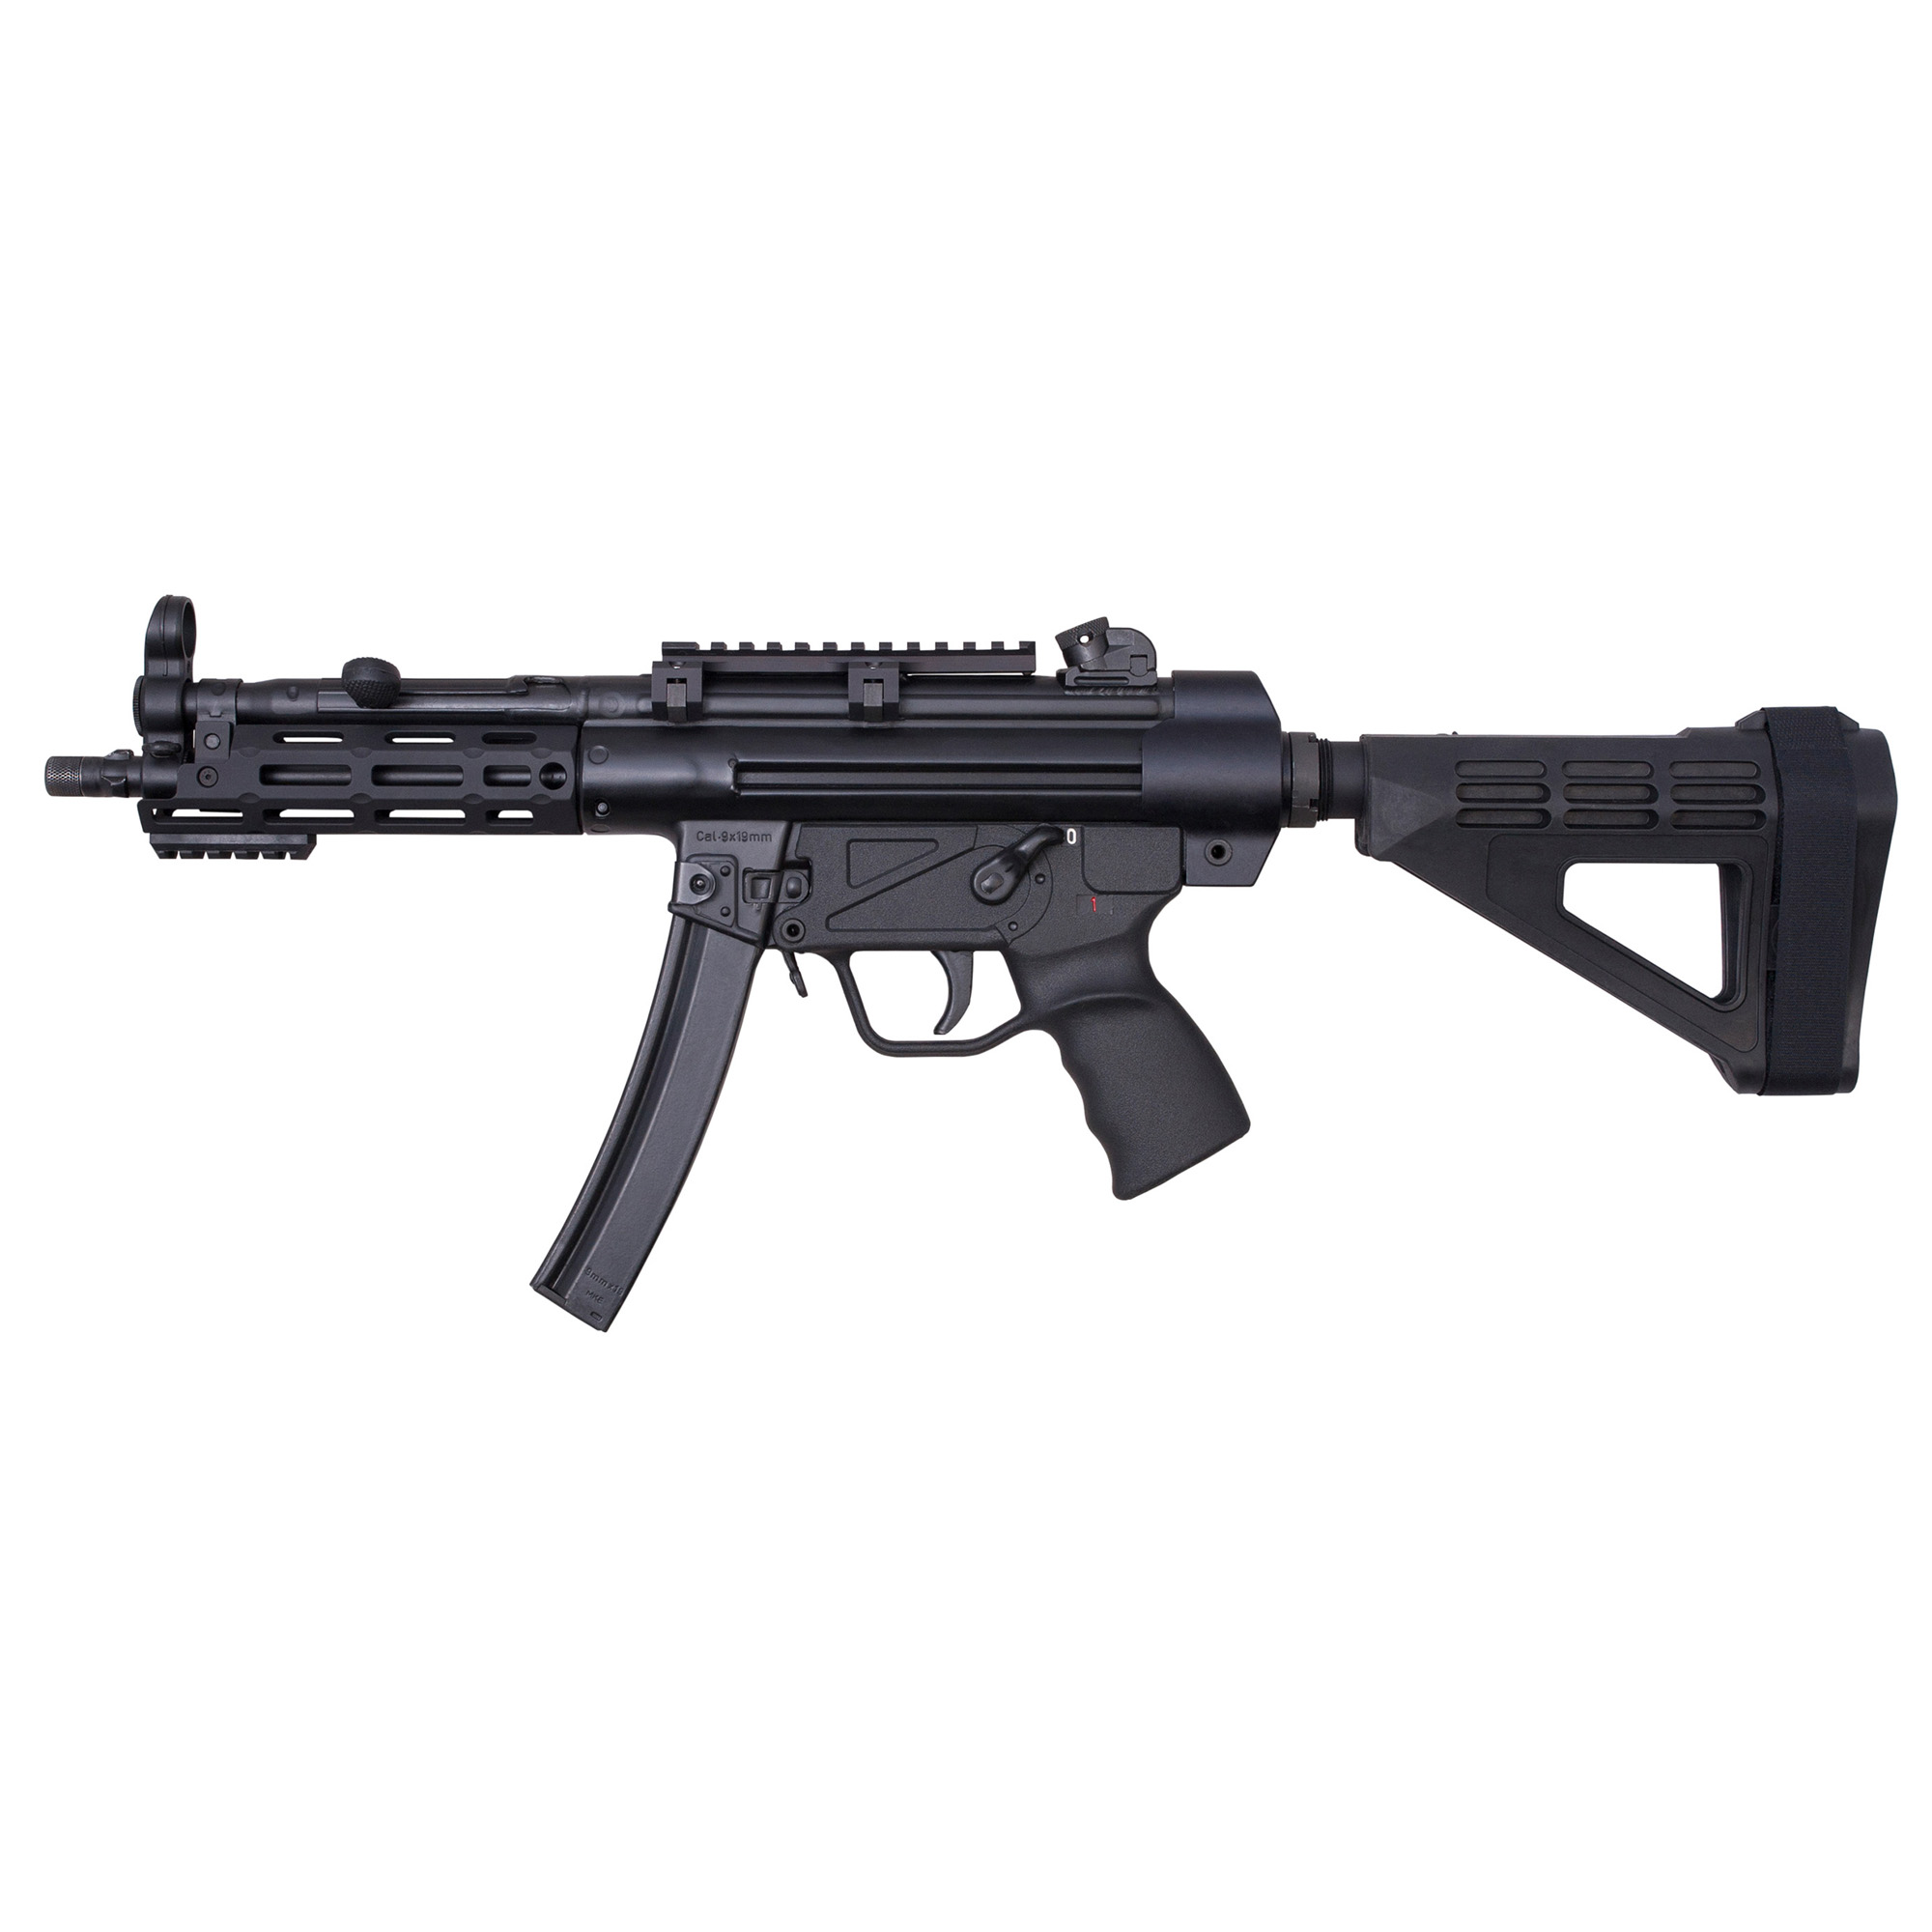 """The Z-5RS Pistolman is enhanced with an M-LOK handguard"""" a lower-profile Picatinny optics rail and an AR-style fixed pistol brace. It is covered by a five-year warranty"""" and ships fully assembled in a 36-inch Plano All Weather Rifle Case. Included as accessories are the receiver end cap"""" three magazines"""" a military-style sling"""" two extra takedown pins"""" a cleaning kit and a user manual."""